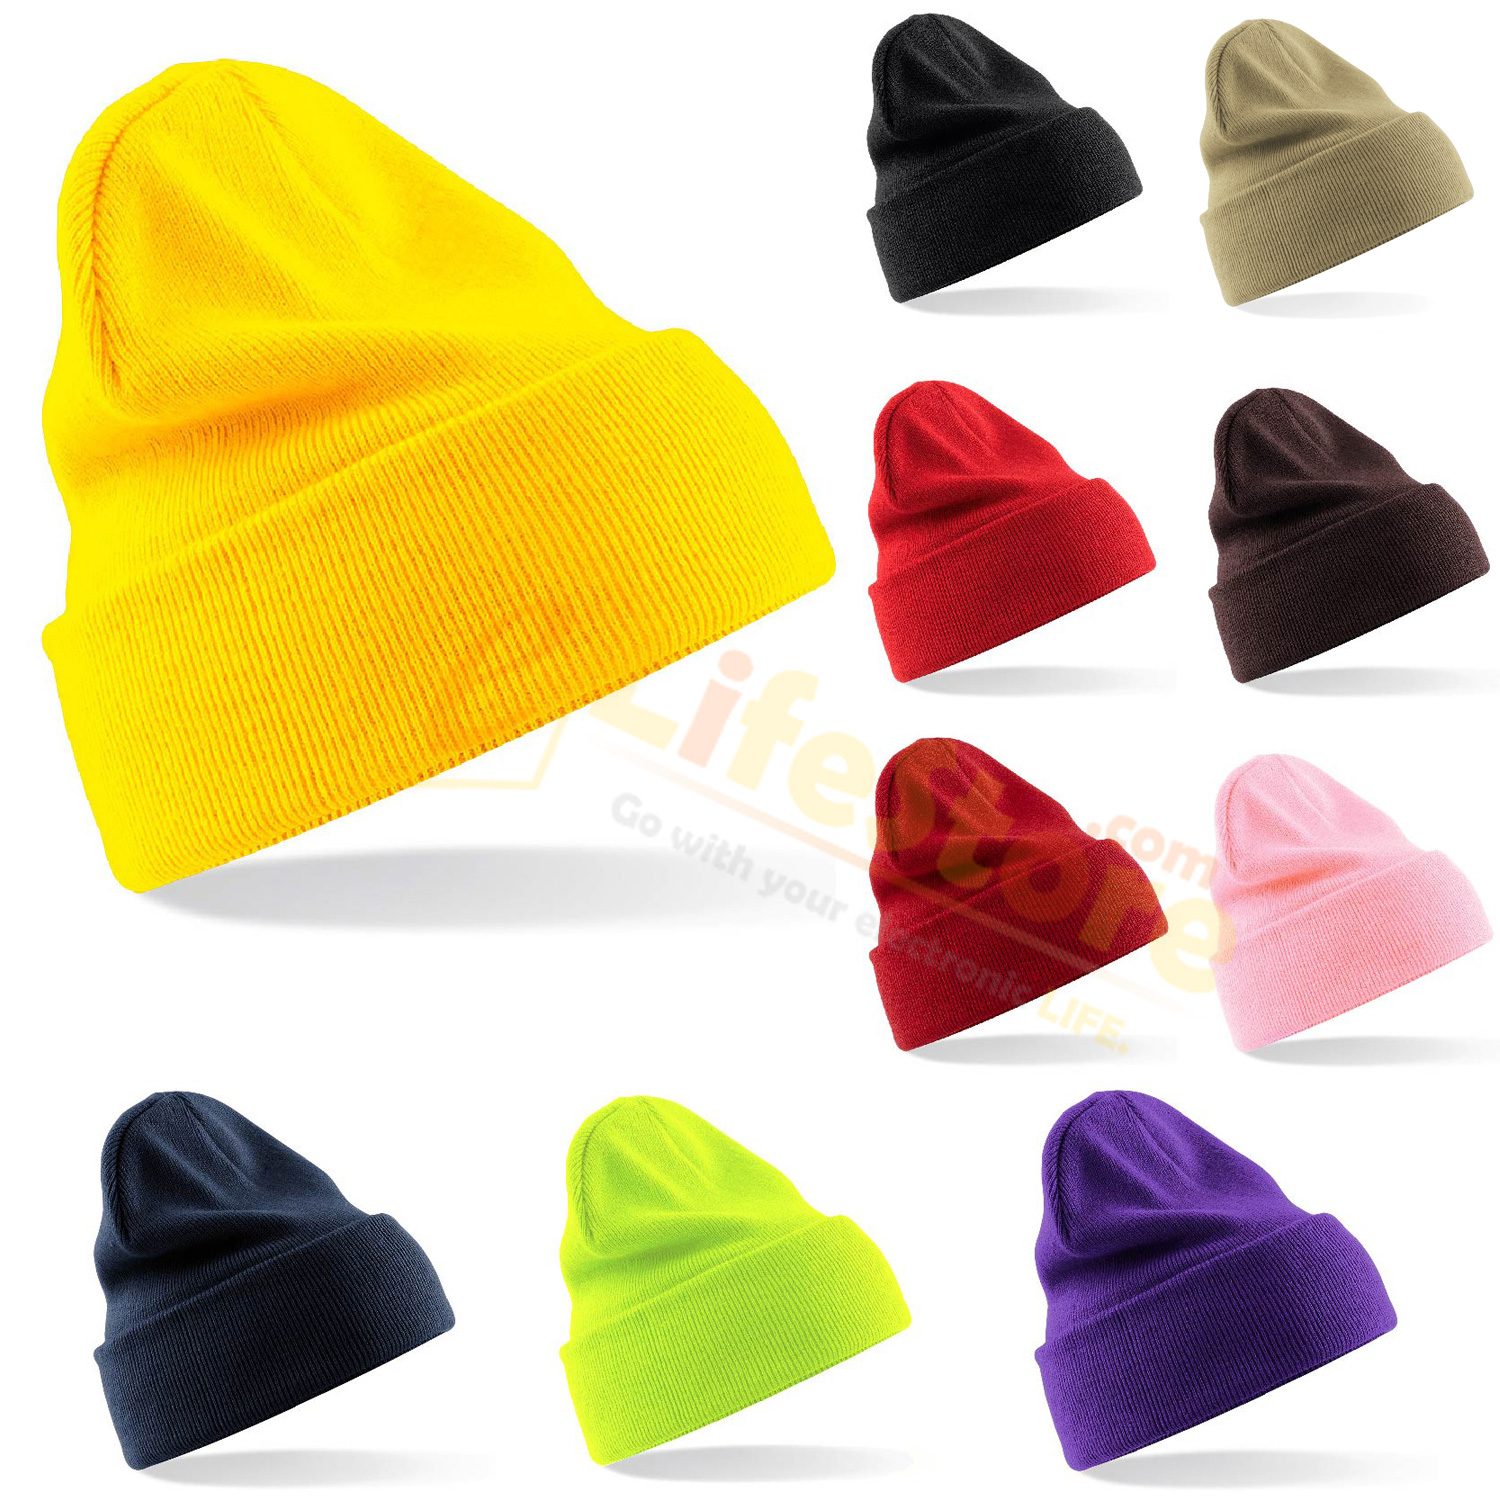 Unisex Men Women Multicolor Warm Cuff Plain Knit Ski Long Beanie Skull Hat Cap | eBay